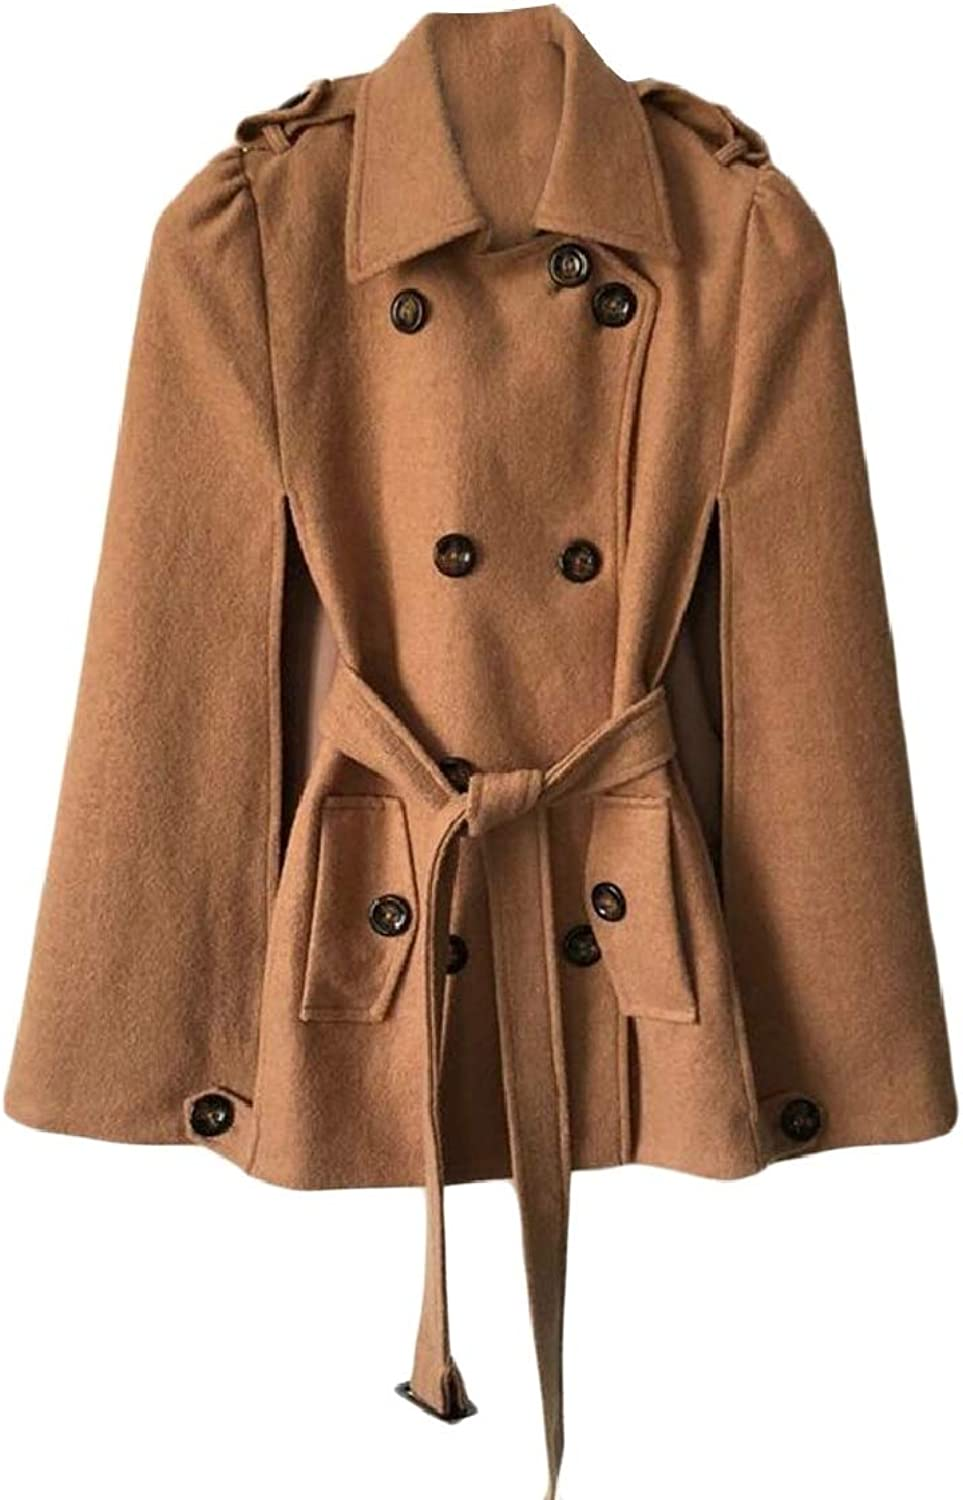 RGCA Women's Casual Warm DoubleBreasted Cape Cloak Pea Coat with Belt